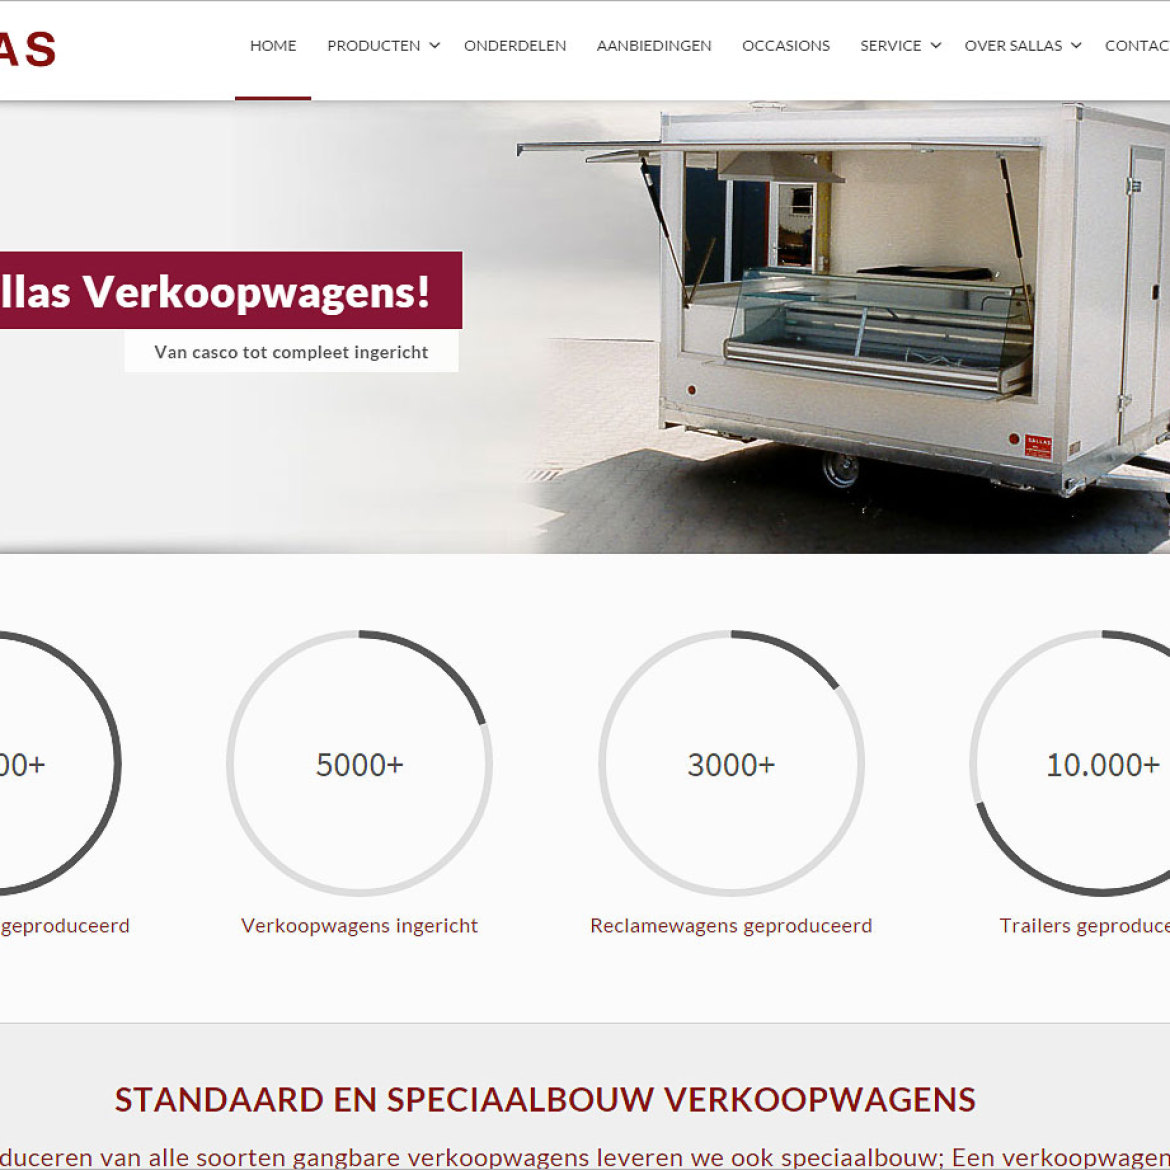 WordPress website Sallas Zwolle